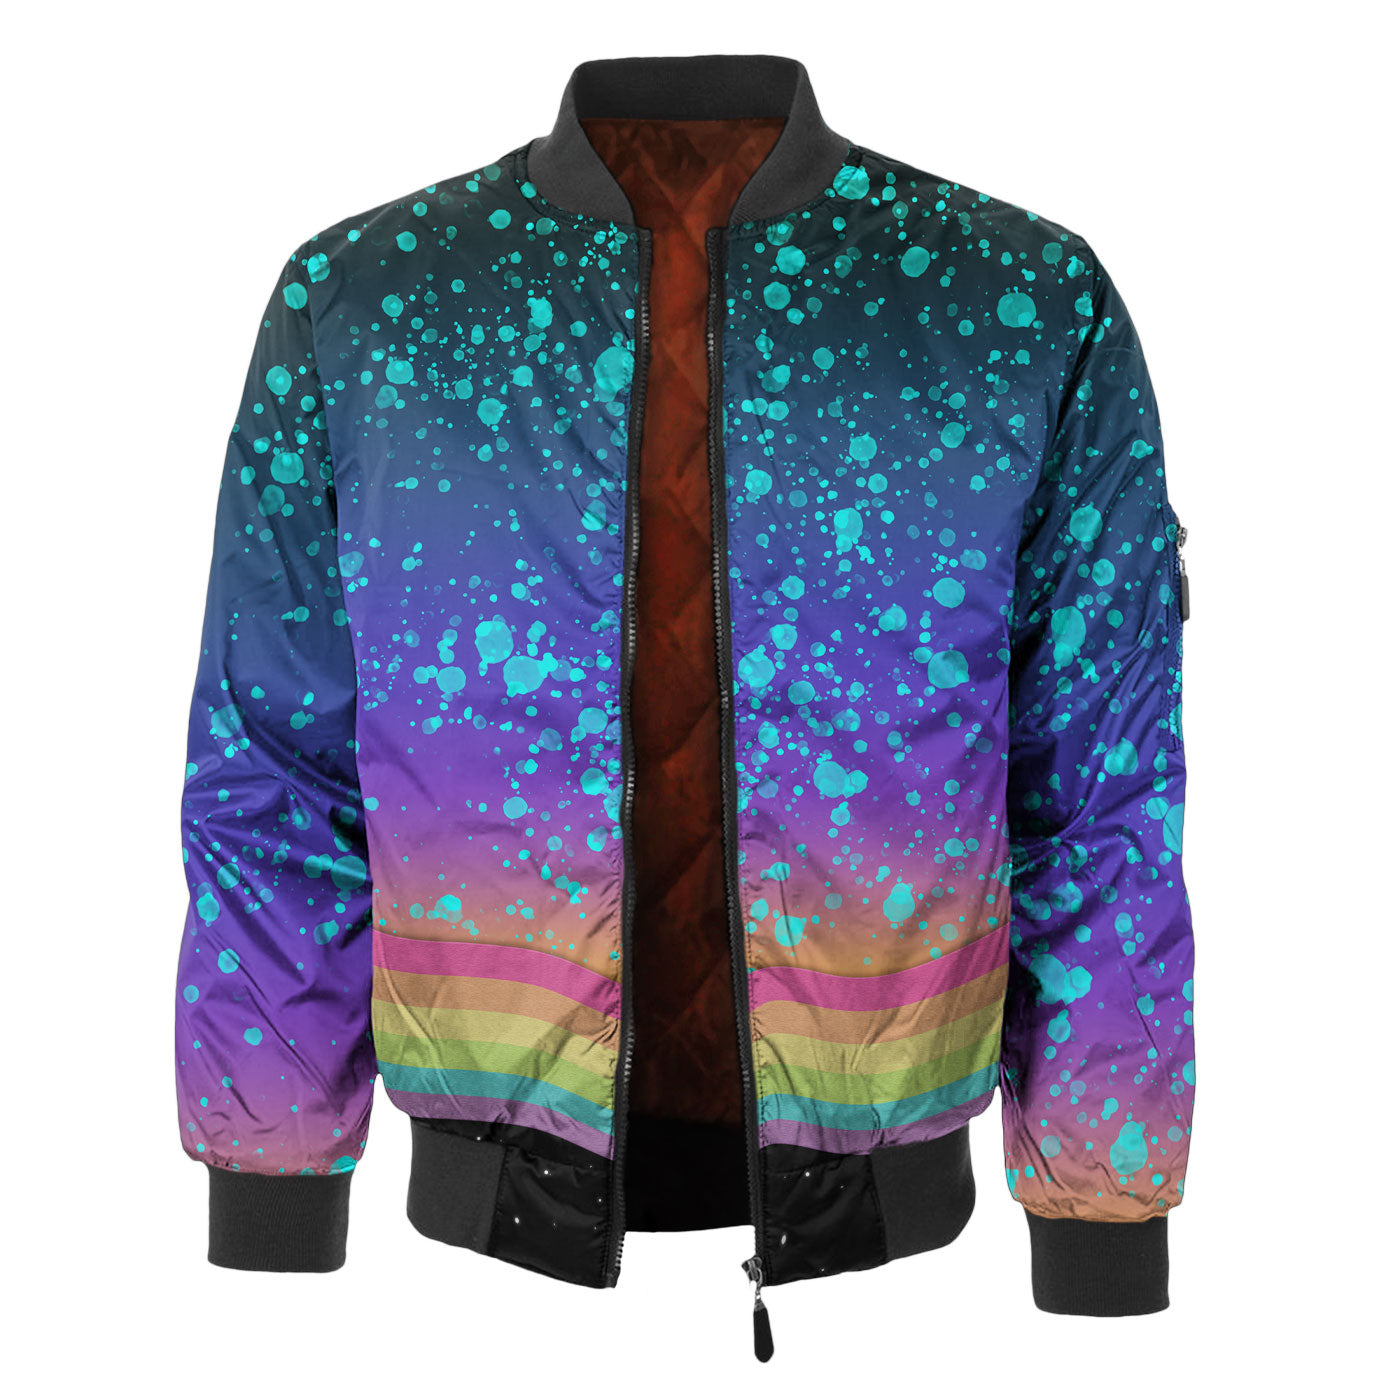 Space Grunge Bomber Jacket